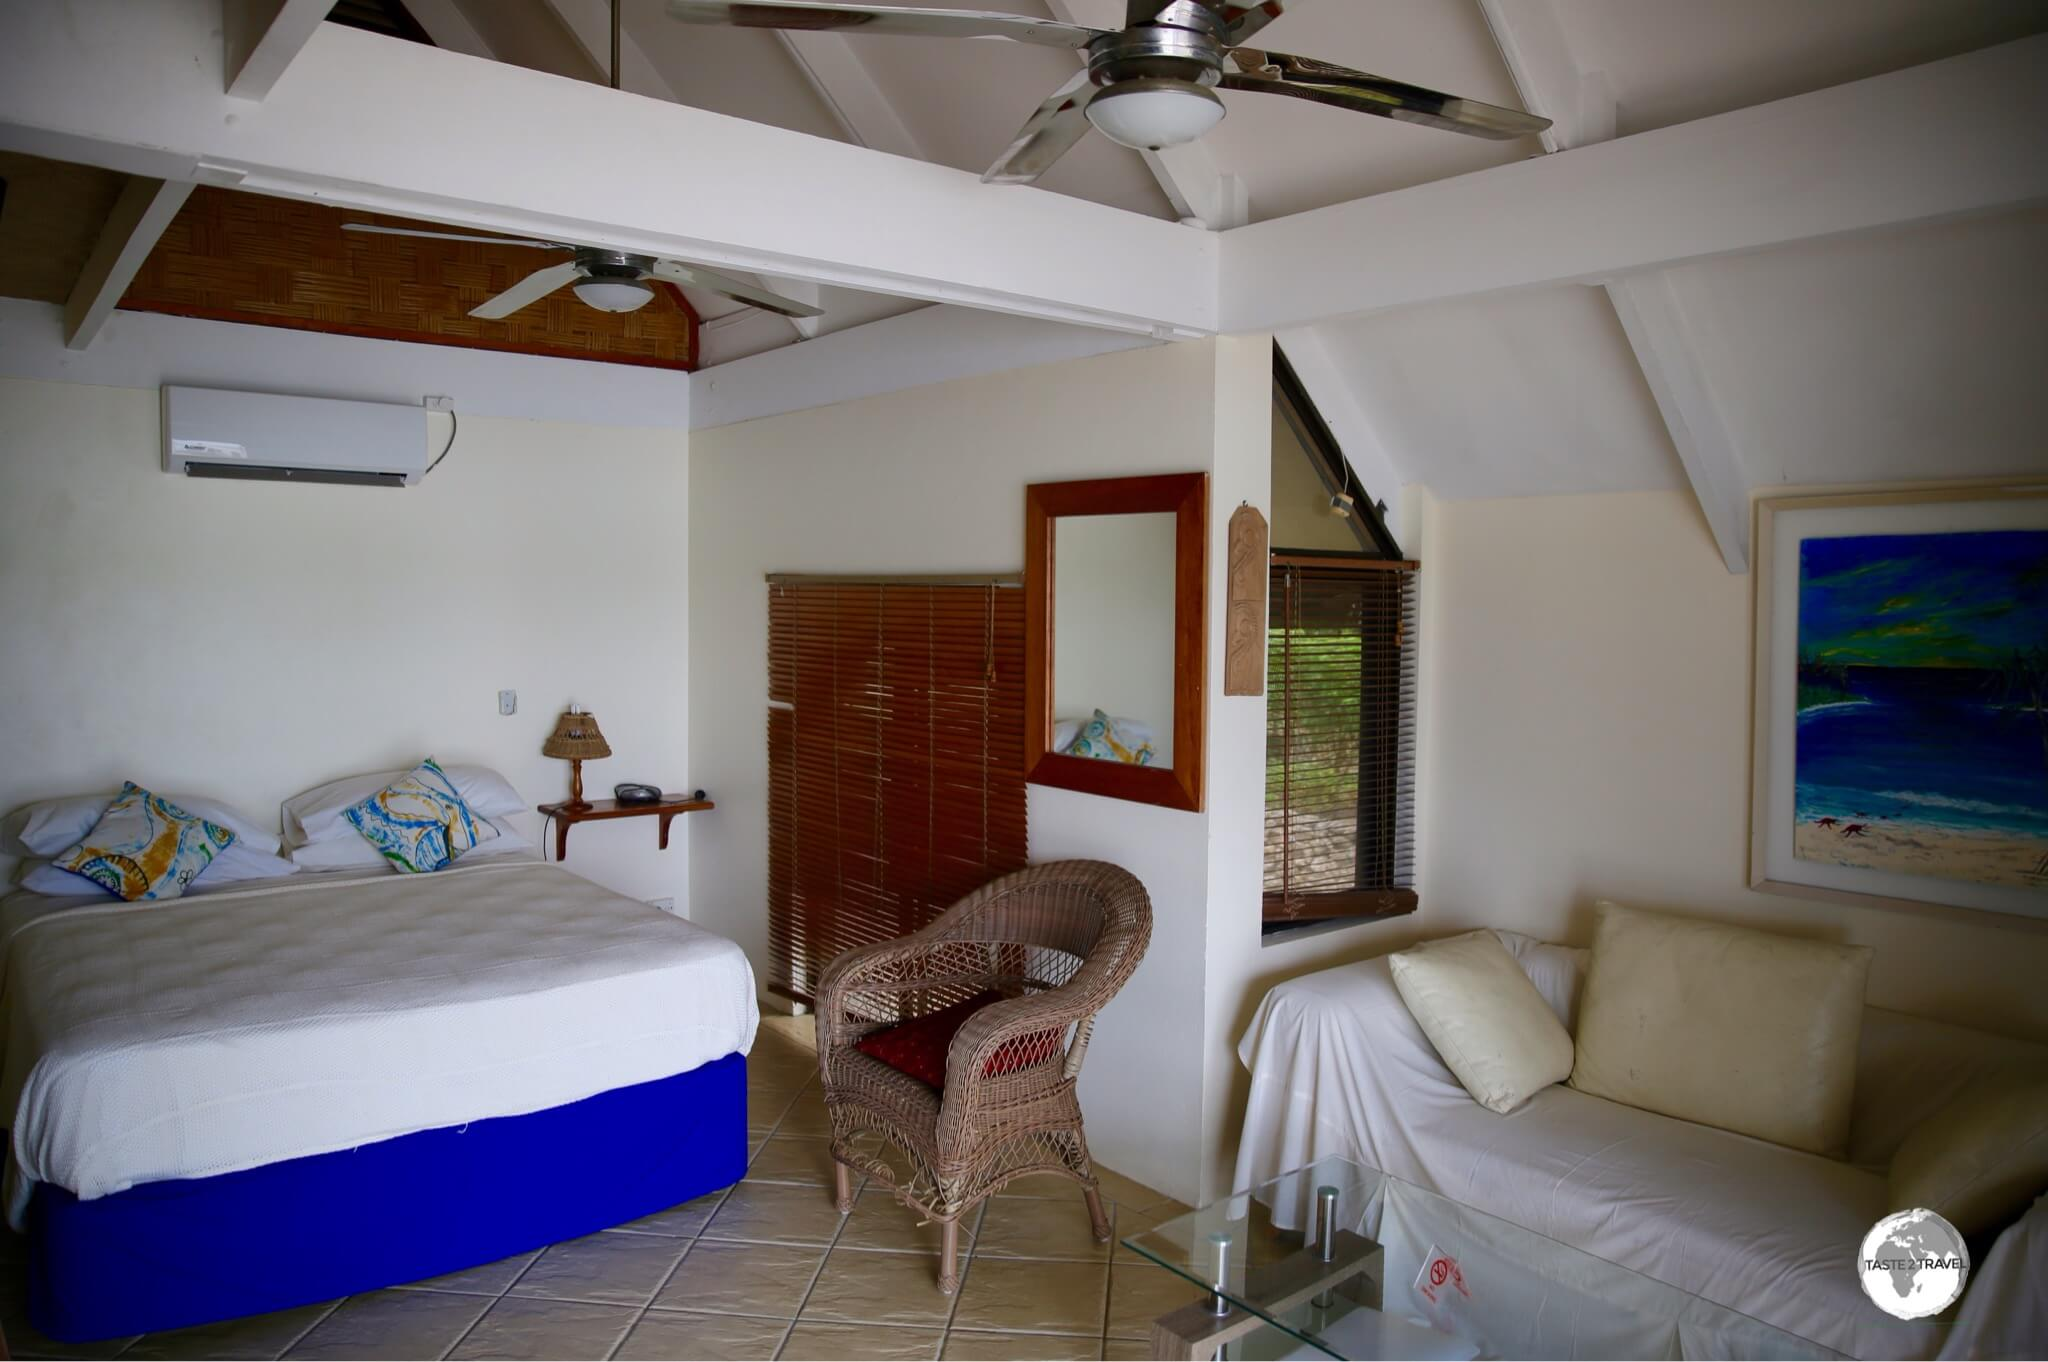 The bedroom in the 'Lagoon bungalow' at Seachange Lodge.